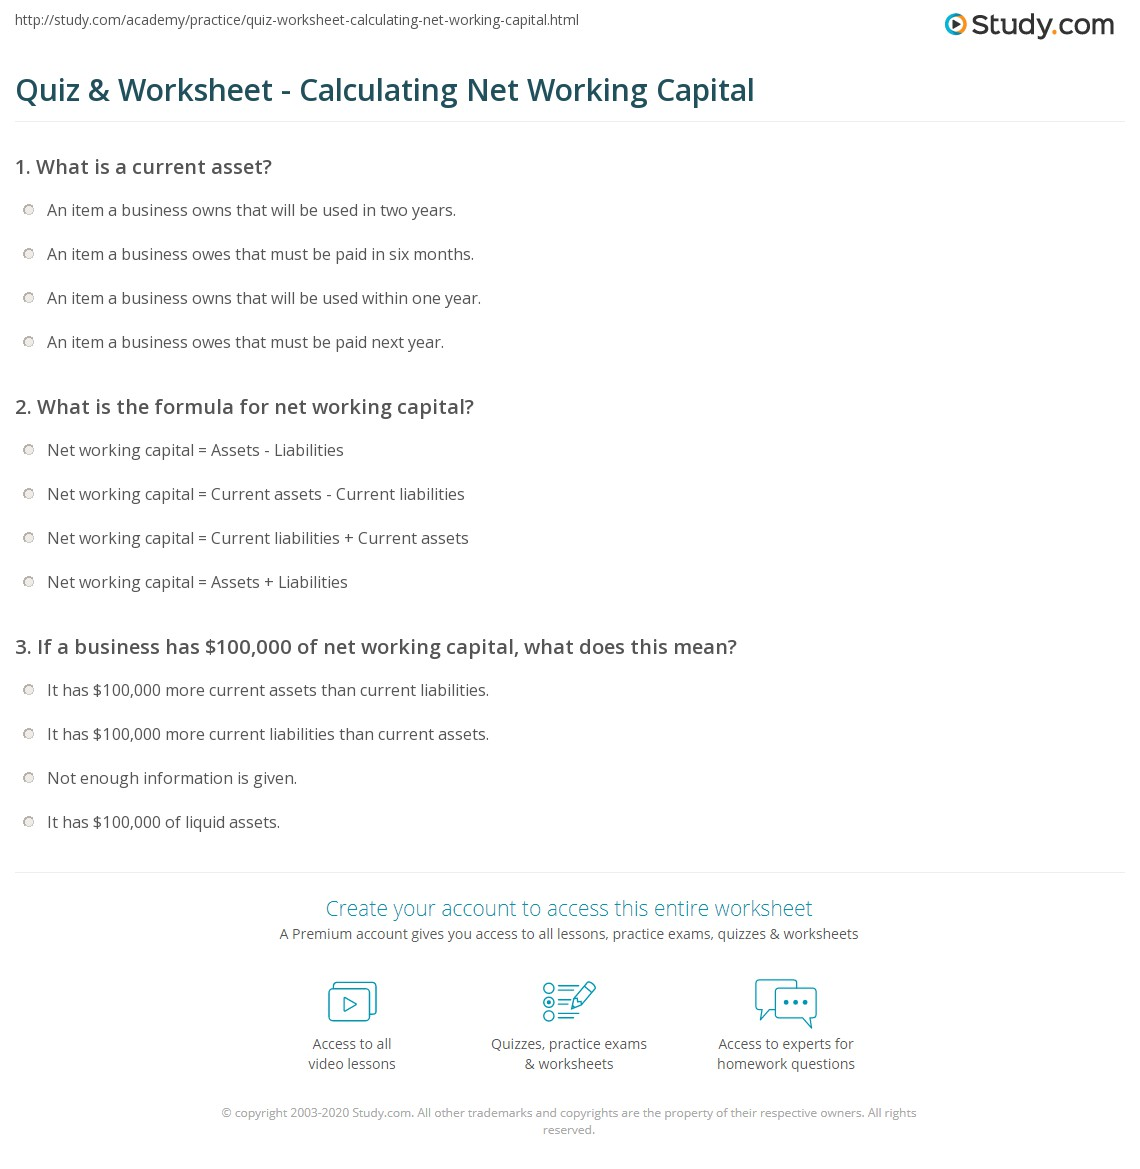 Quiz & Worksheet - Calculating Net Working Capital | Study.com